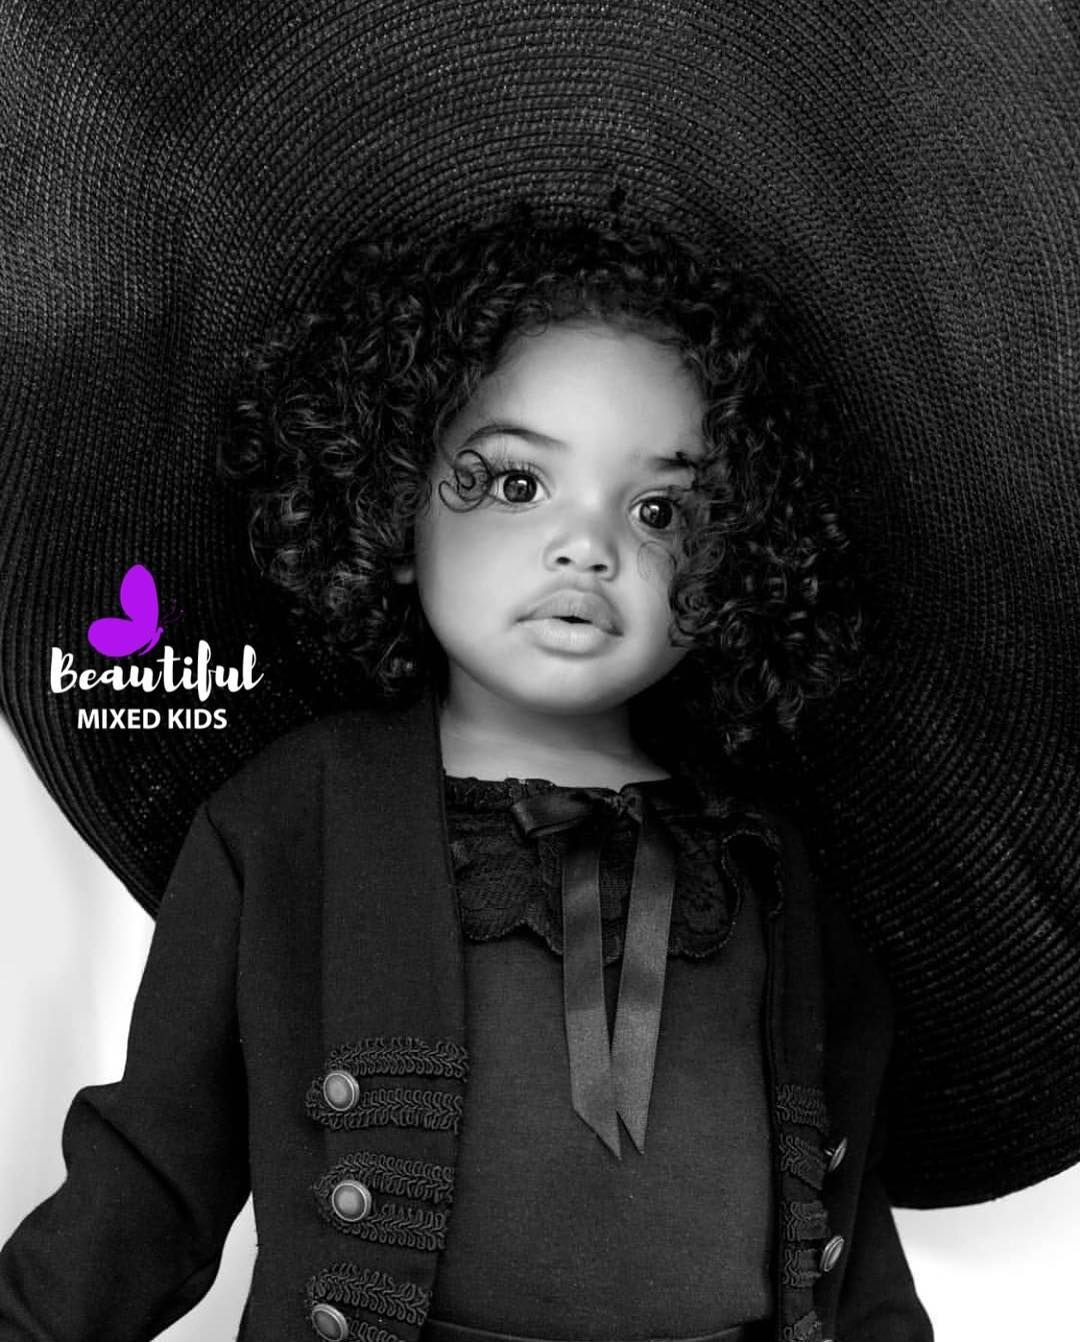 Beautiful Mixed Kids On Instagram Bronte 2 Years British Ghanaian Bethanysmiith Dm For A Instant Feature F Mixed Kids Cute Kids Pretty Baby